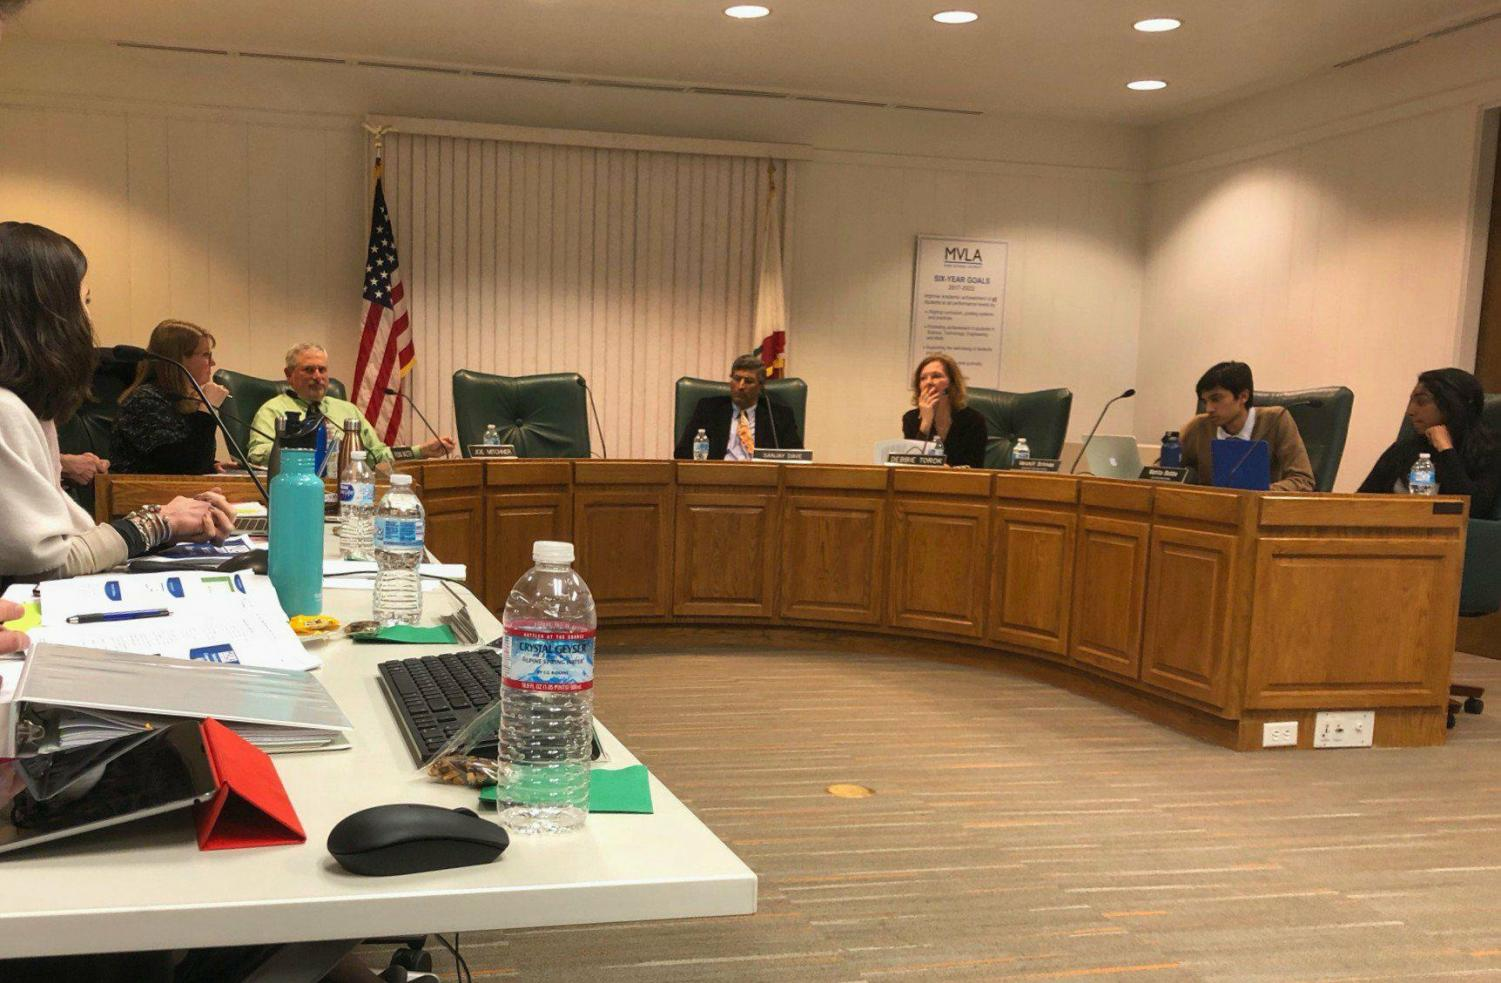 The MVLA School Board discusses raising the daily wage for substitutes to $180 from $152. The raise would help attract subs who are drawn to competing surrounding school districts, solving the shortage of subs. Alex Wong.